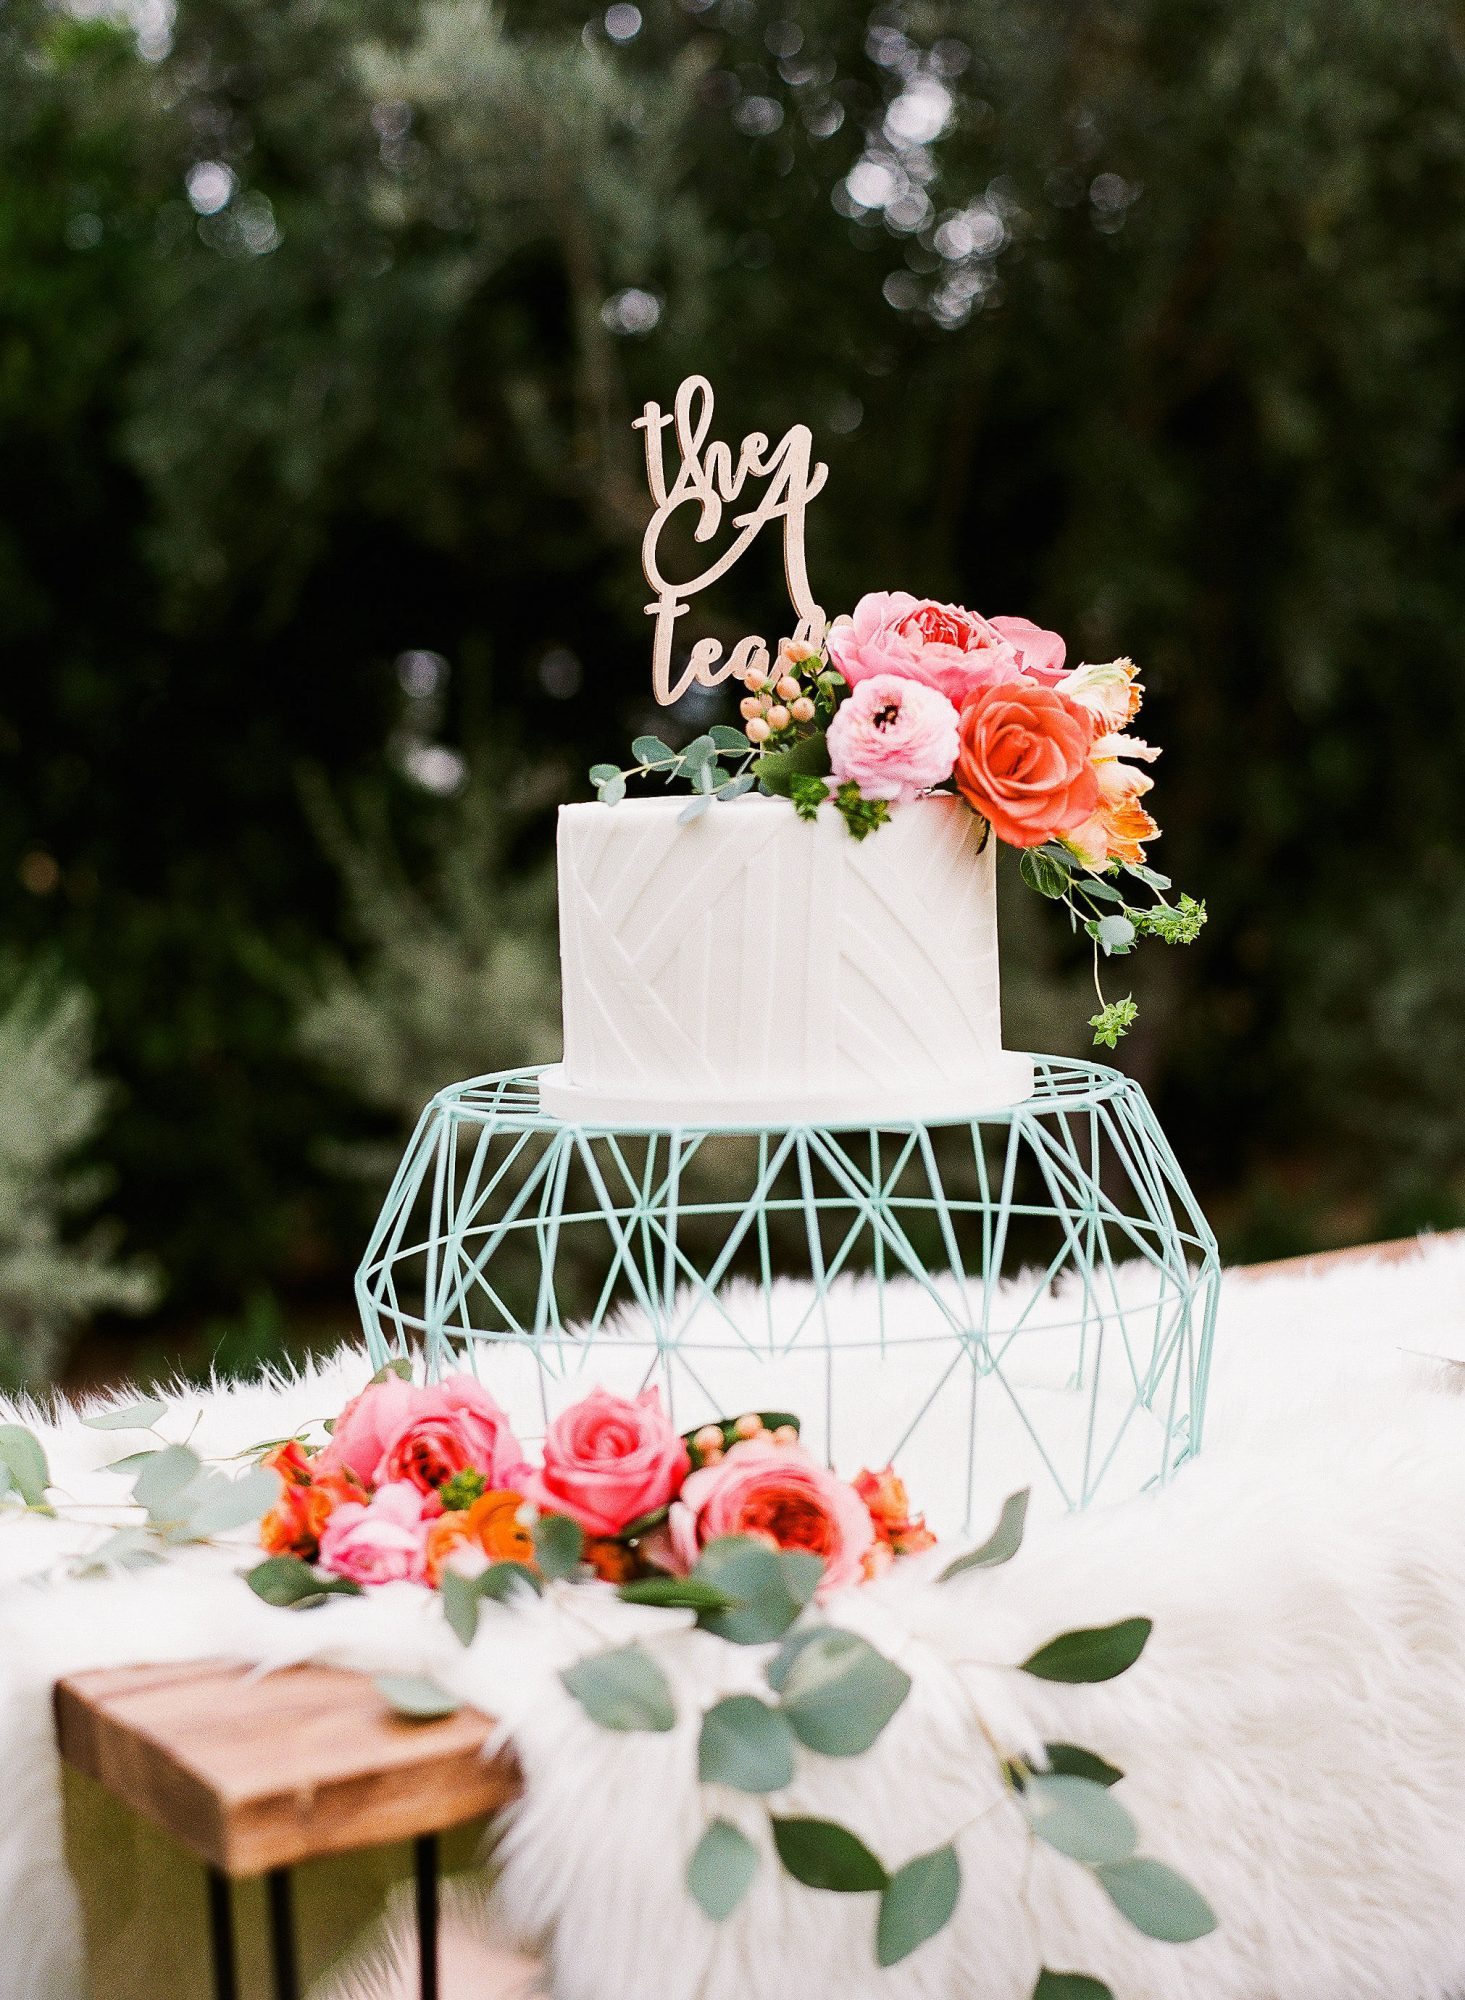 celebrate wedding anniversary - aubrey austin wedding cake